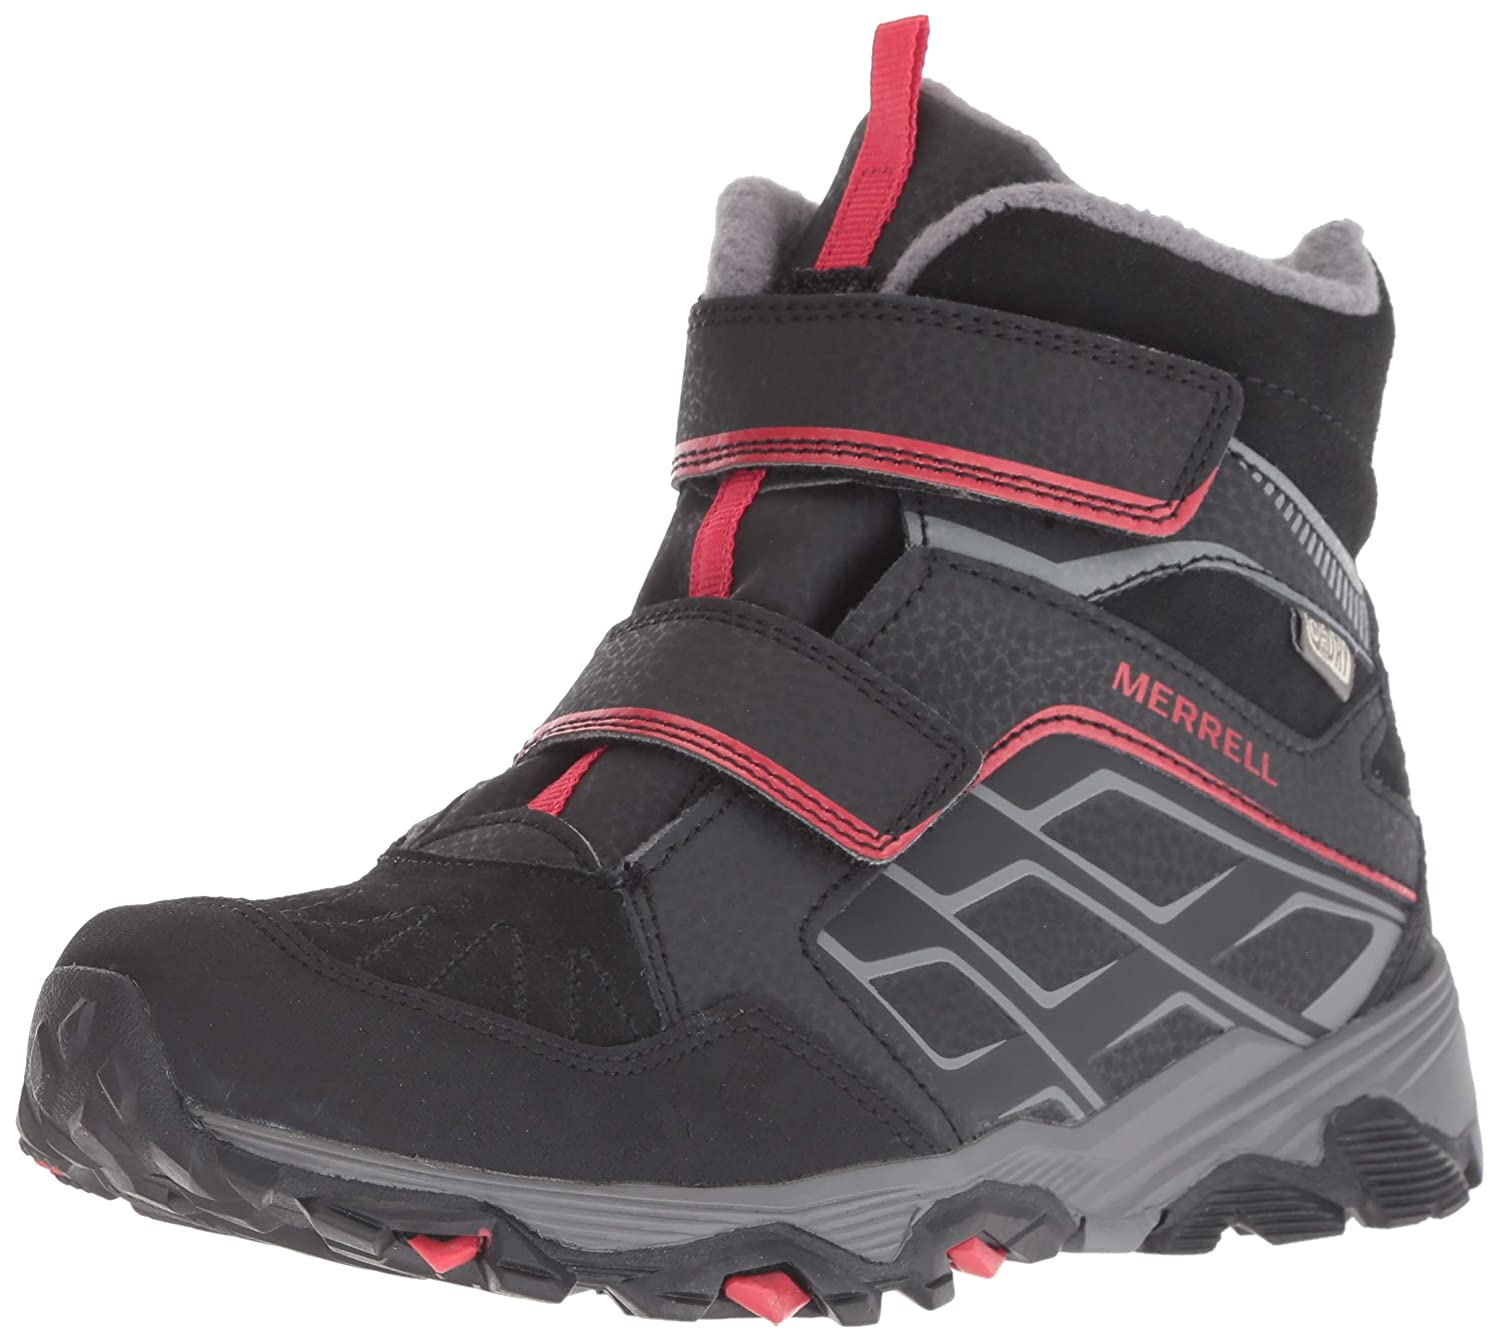 3dad35d4b6d Merrell Moab Fst Polar Mid A/C Waterproof Hiking Boot (Little Kid/Big Kid)